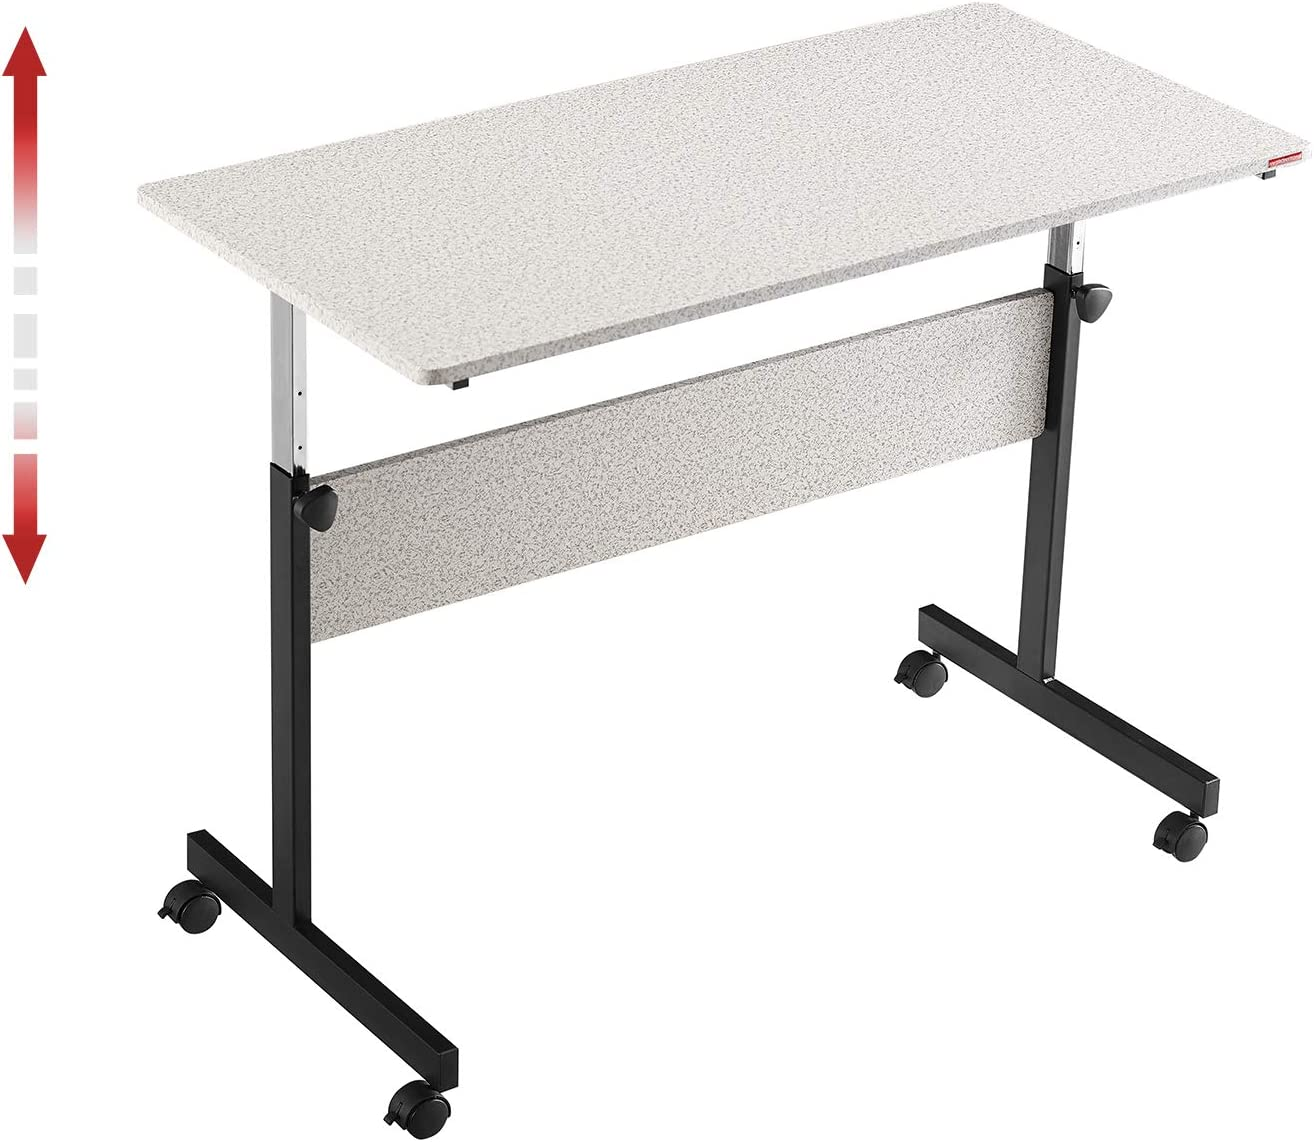 """Mr IRONSTONE Height Adjustable Desk Sit-Stand 47.6"""" Elevate Mobile Computer Desk Home & Office Utility Table with Rolling Wheels (Spatter Gray)"""